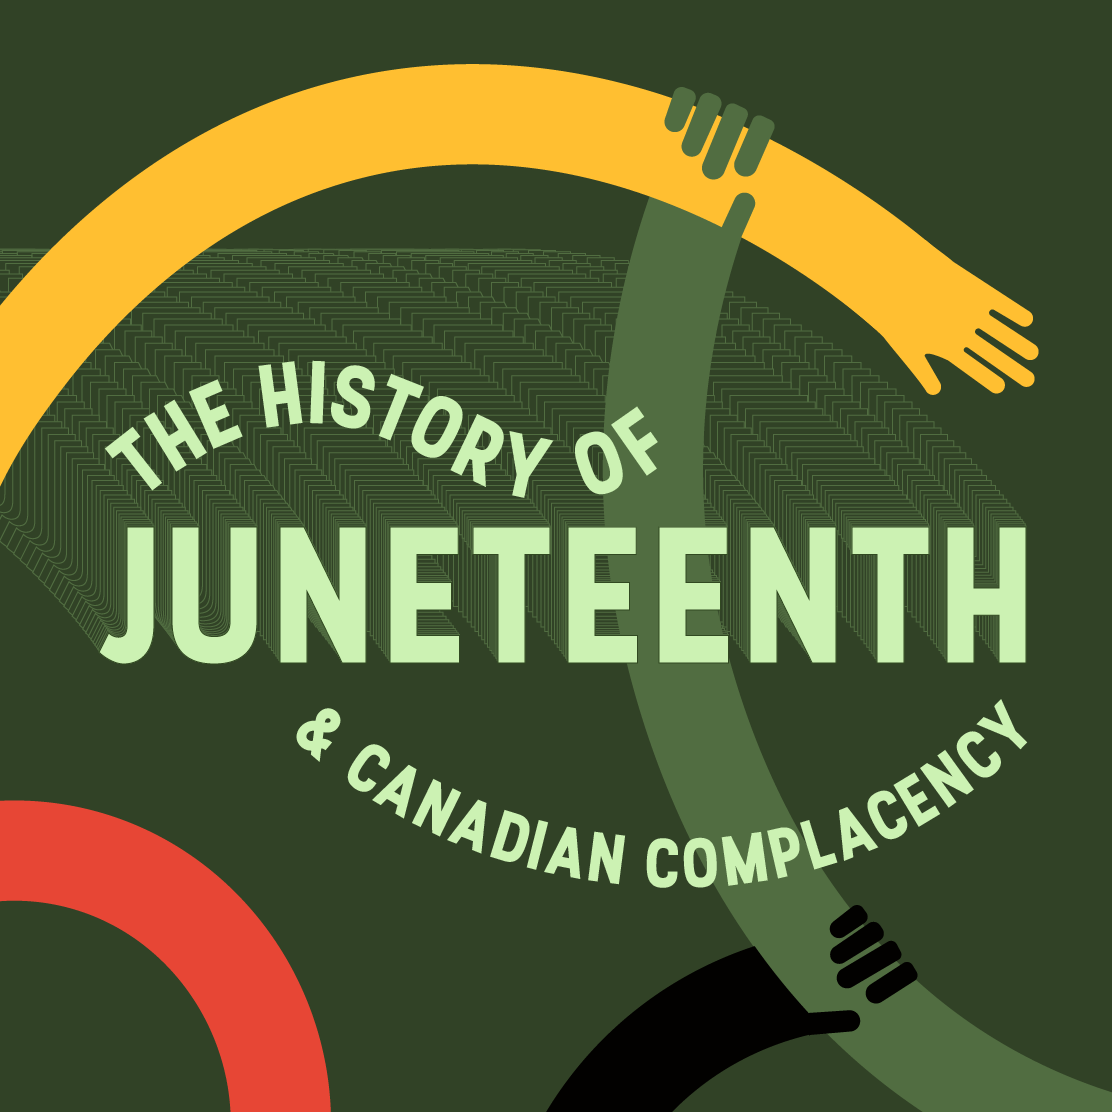 The History of Juneteenth and Canadian complacency